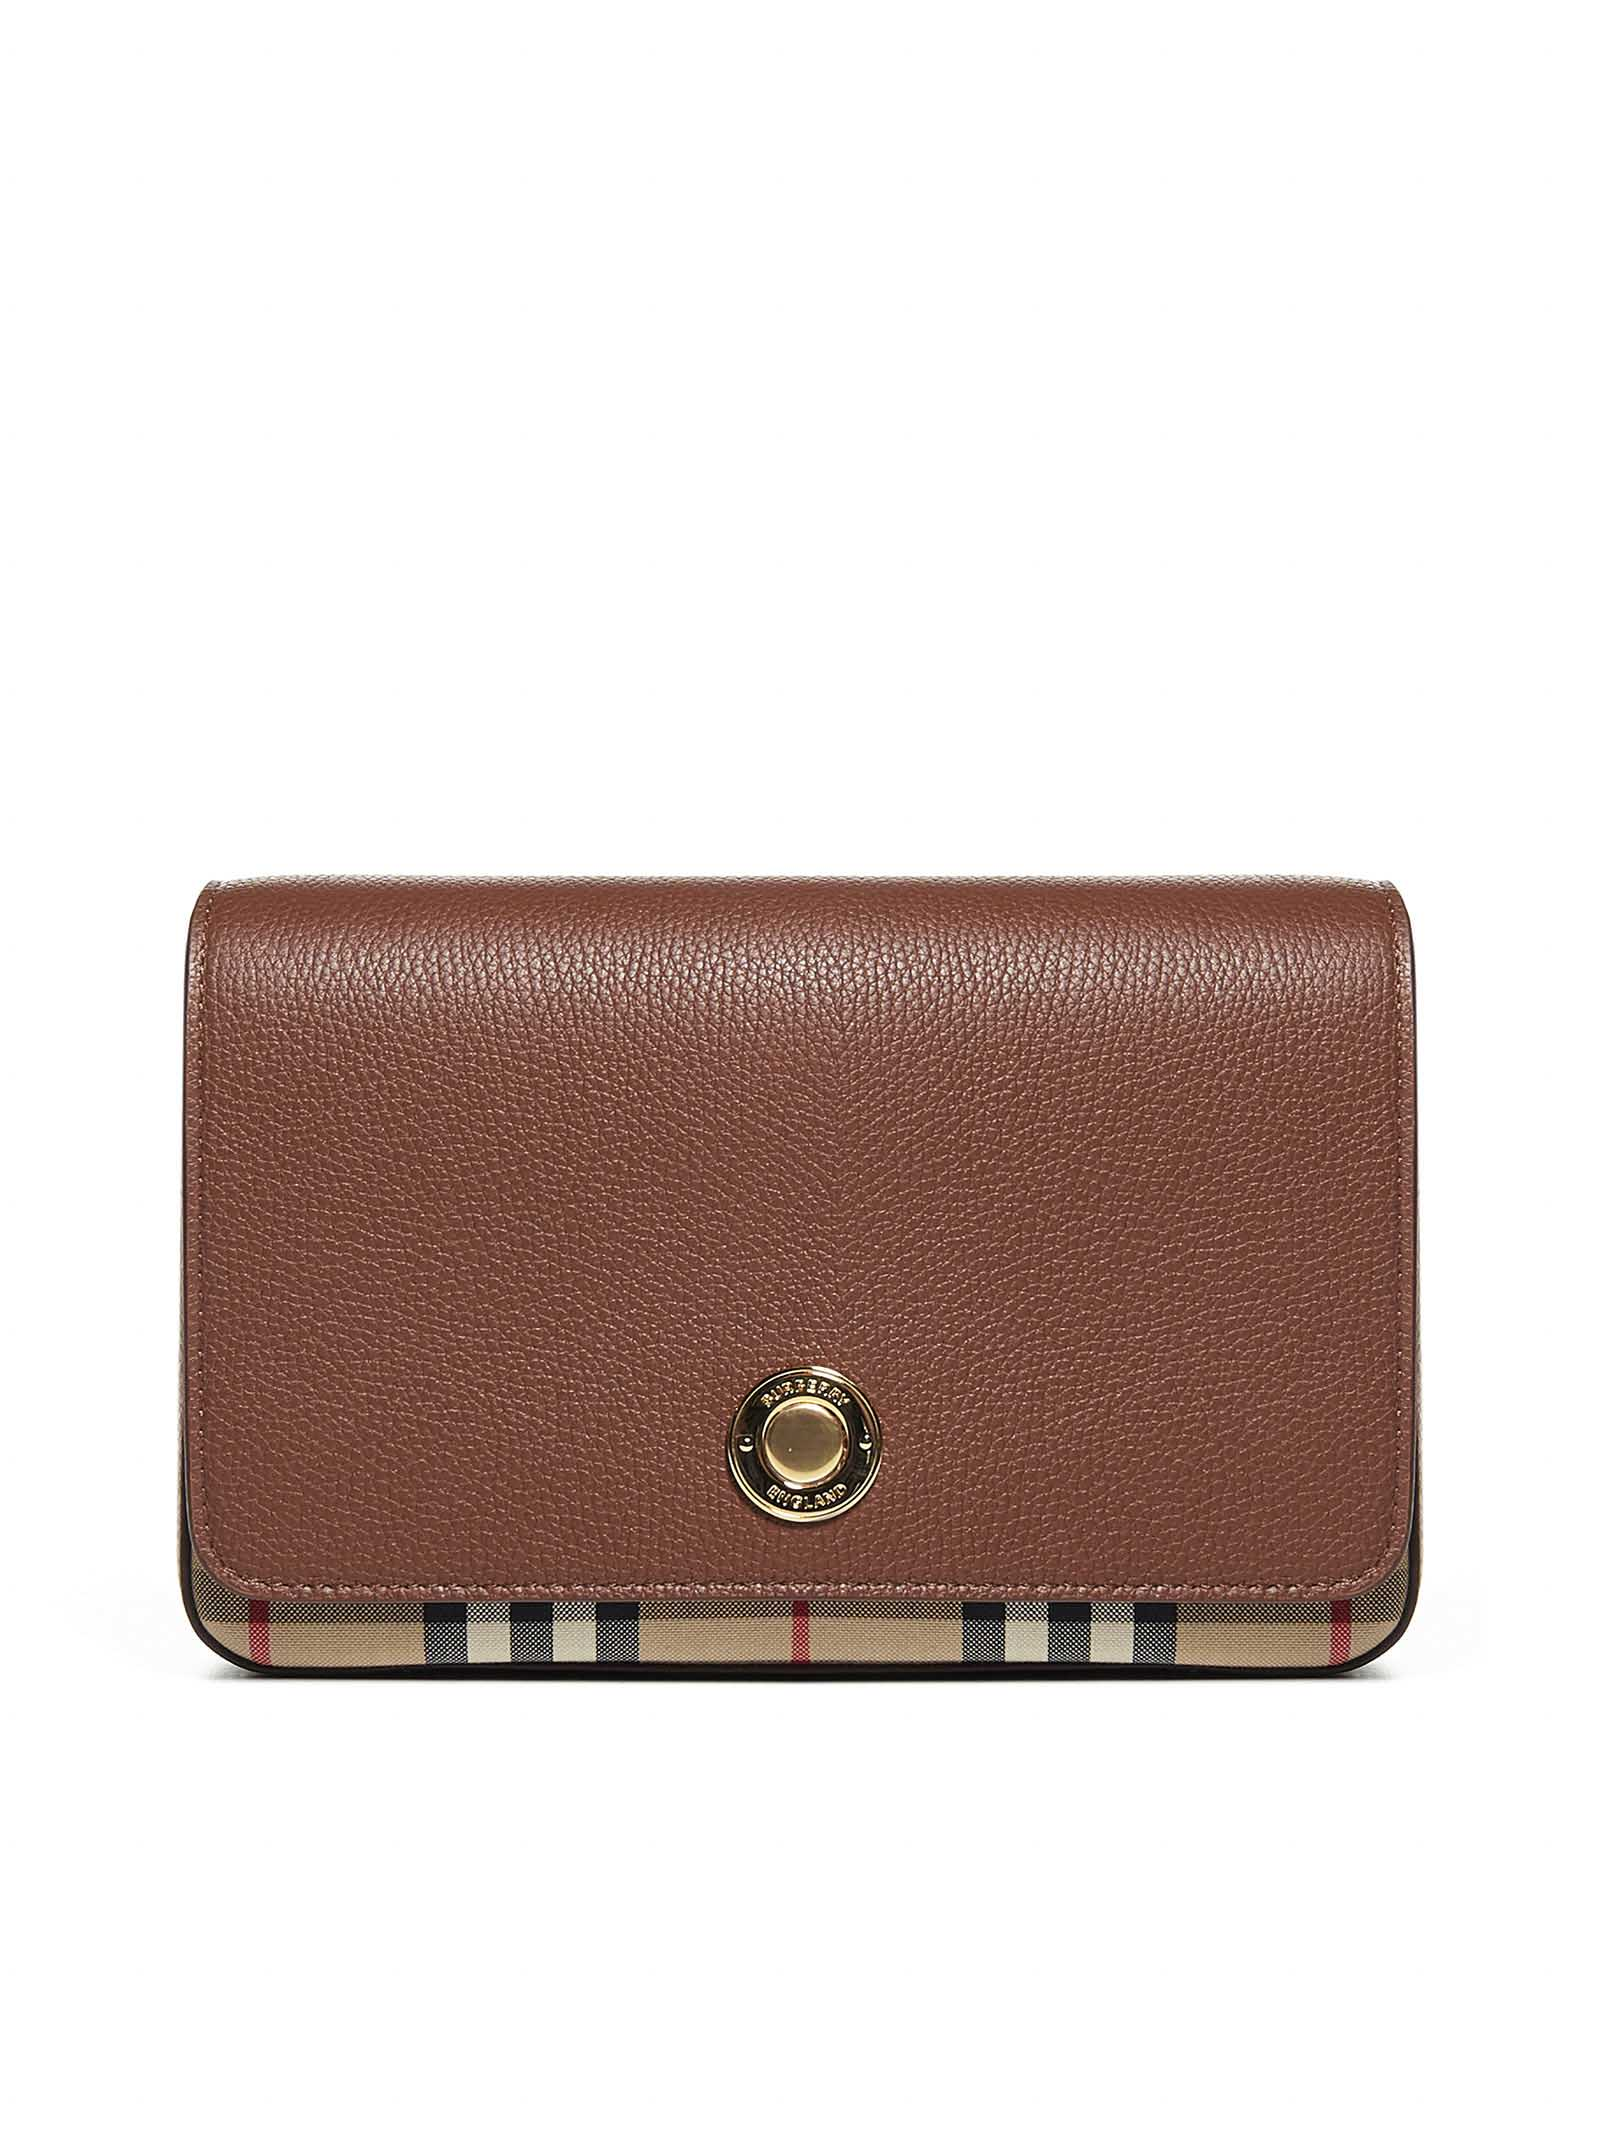 Burberry Hampshire Leather And Vintage Check Fabric Bag